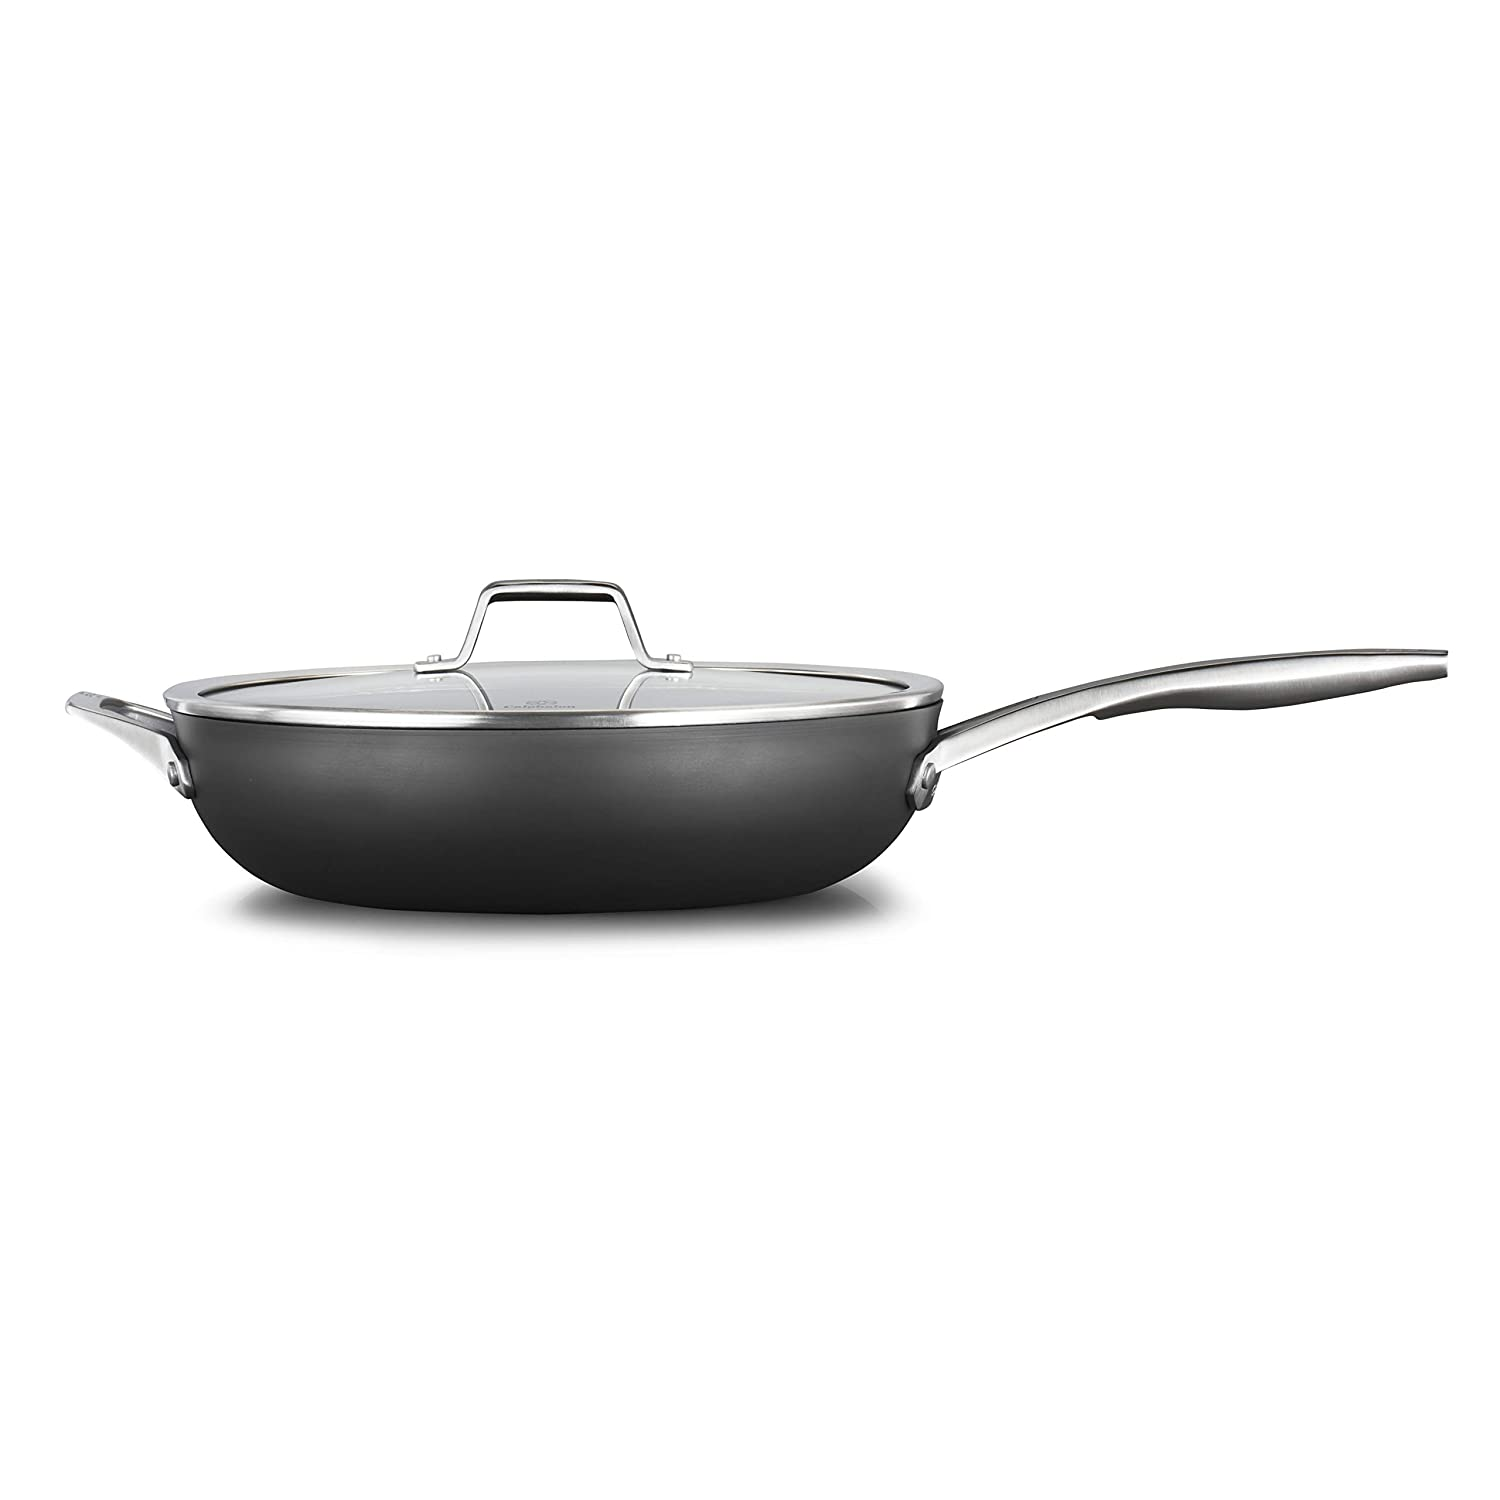 Calphalon 2029650 Premier Hard-Anodized Nonstick 13-Inch Deep Skillet with Cover, Black